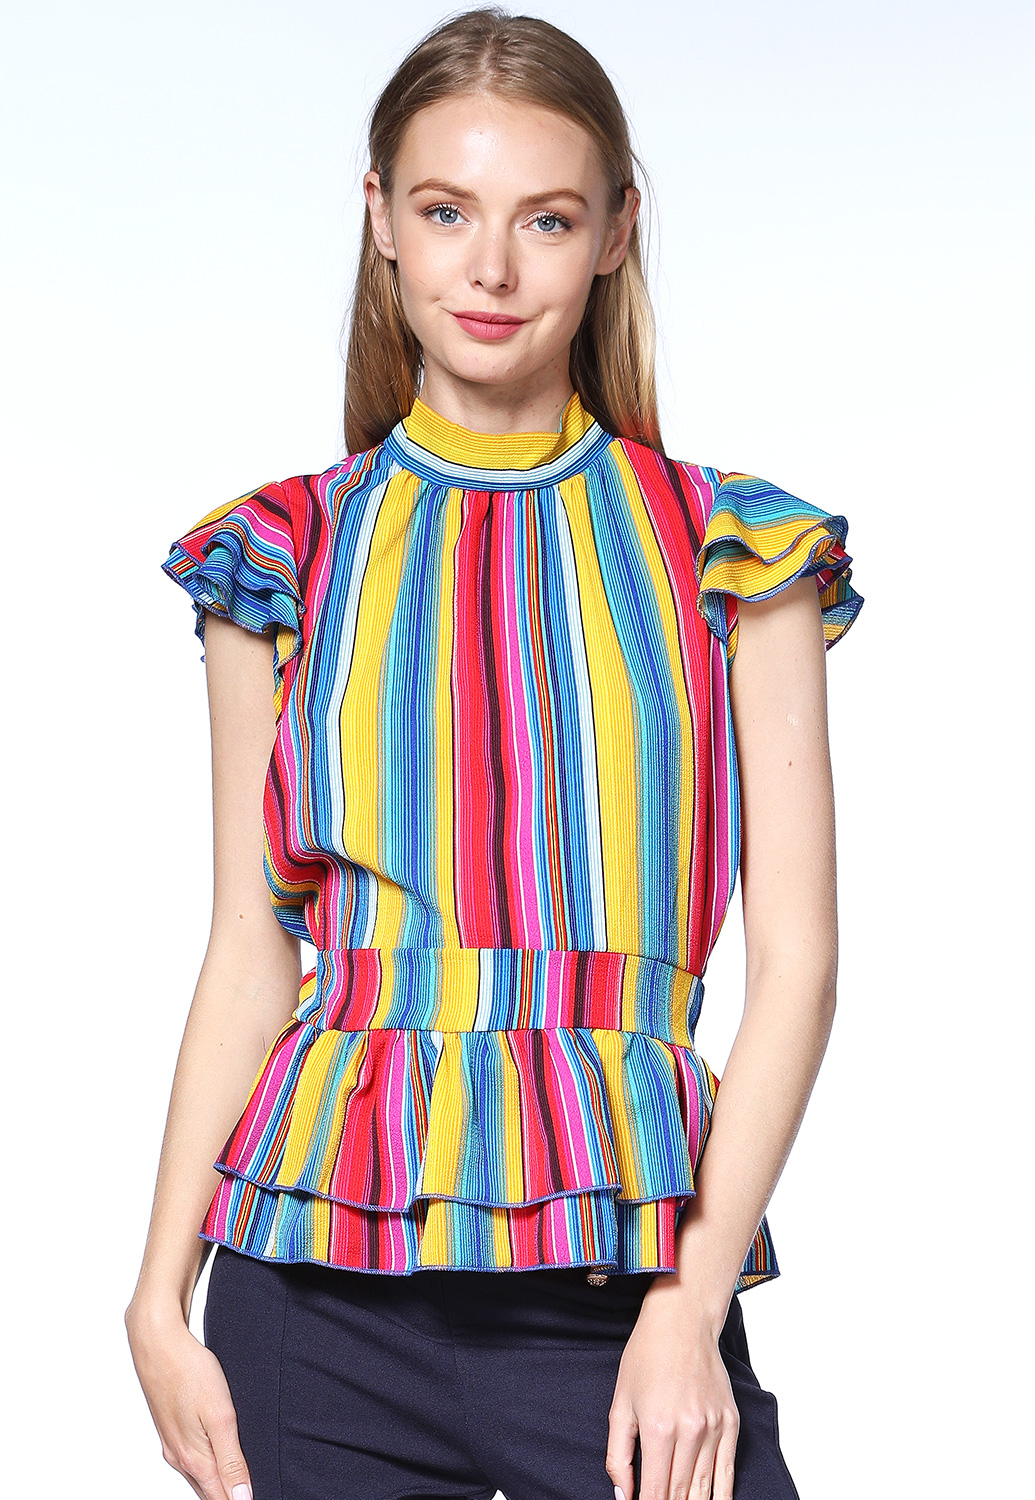 Pinstriped Multi-Color Dressy Top